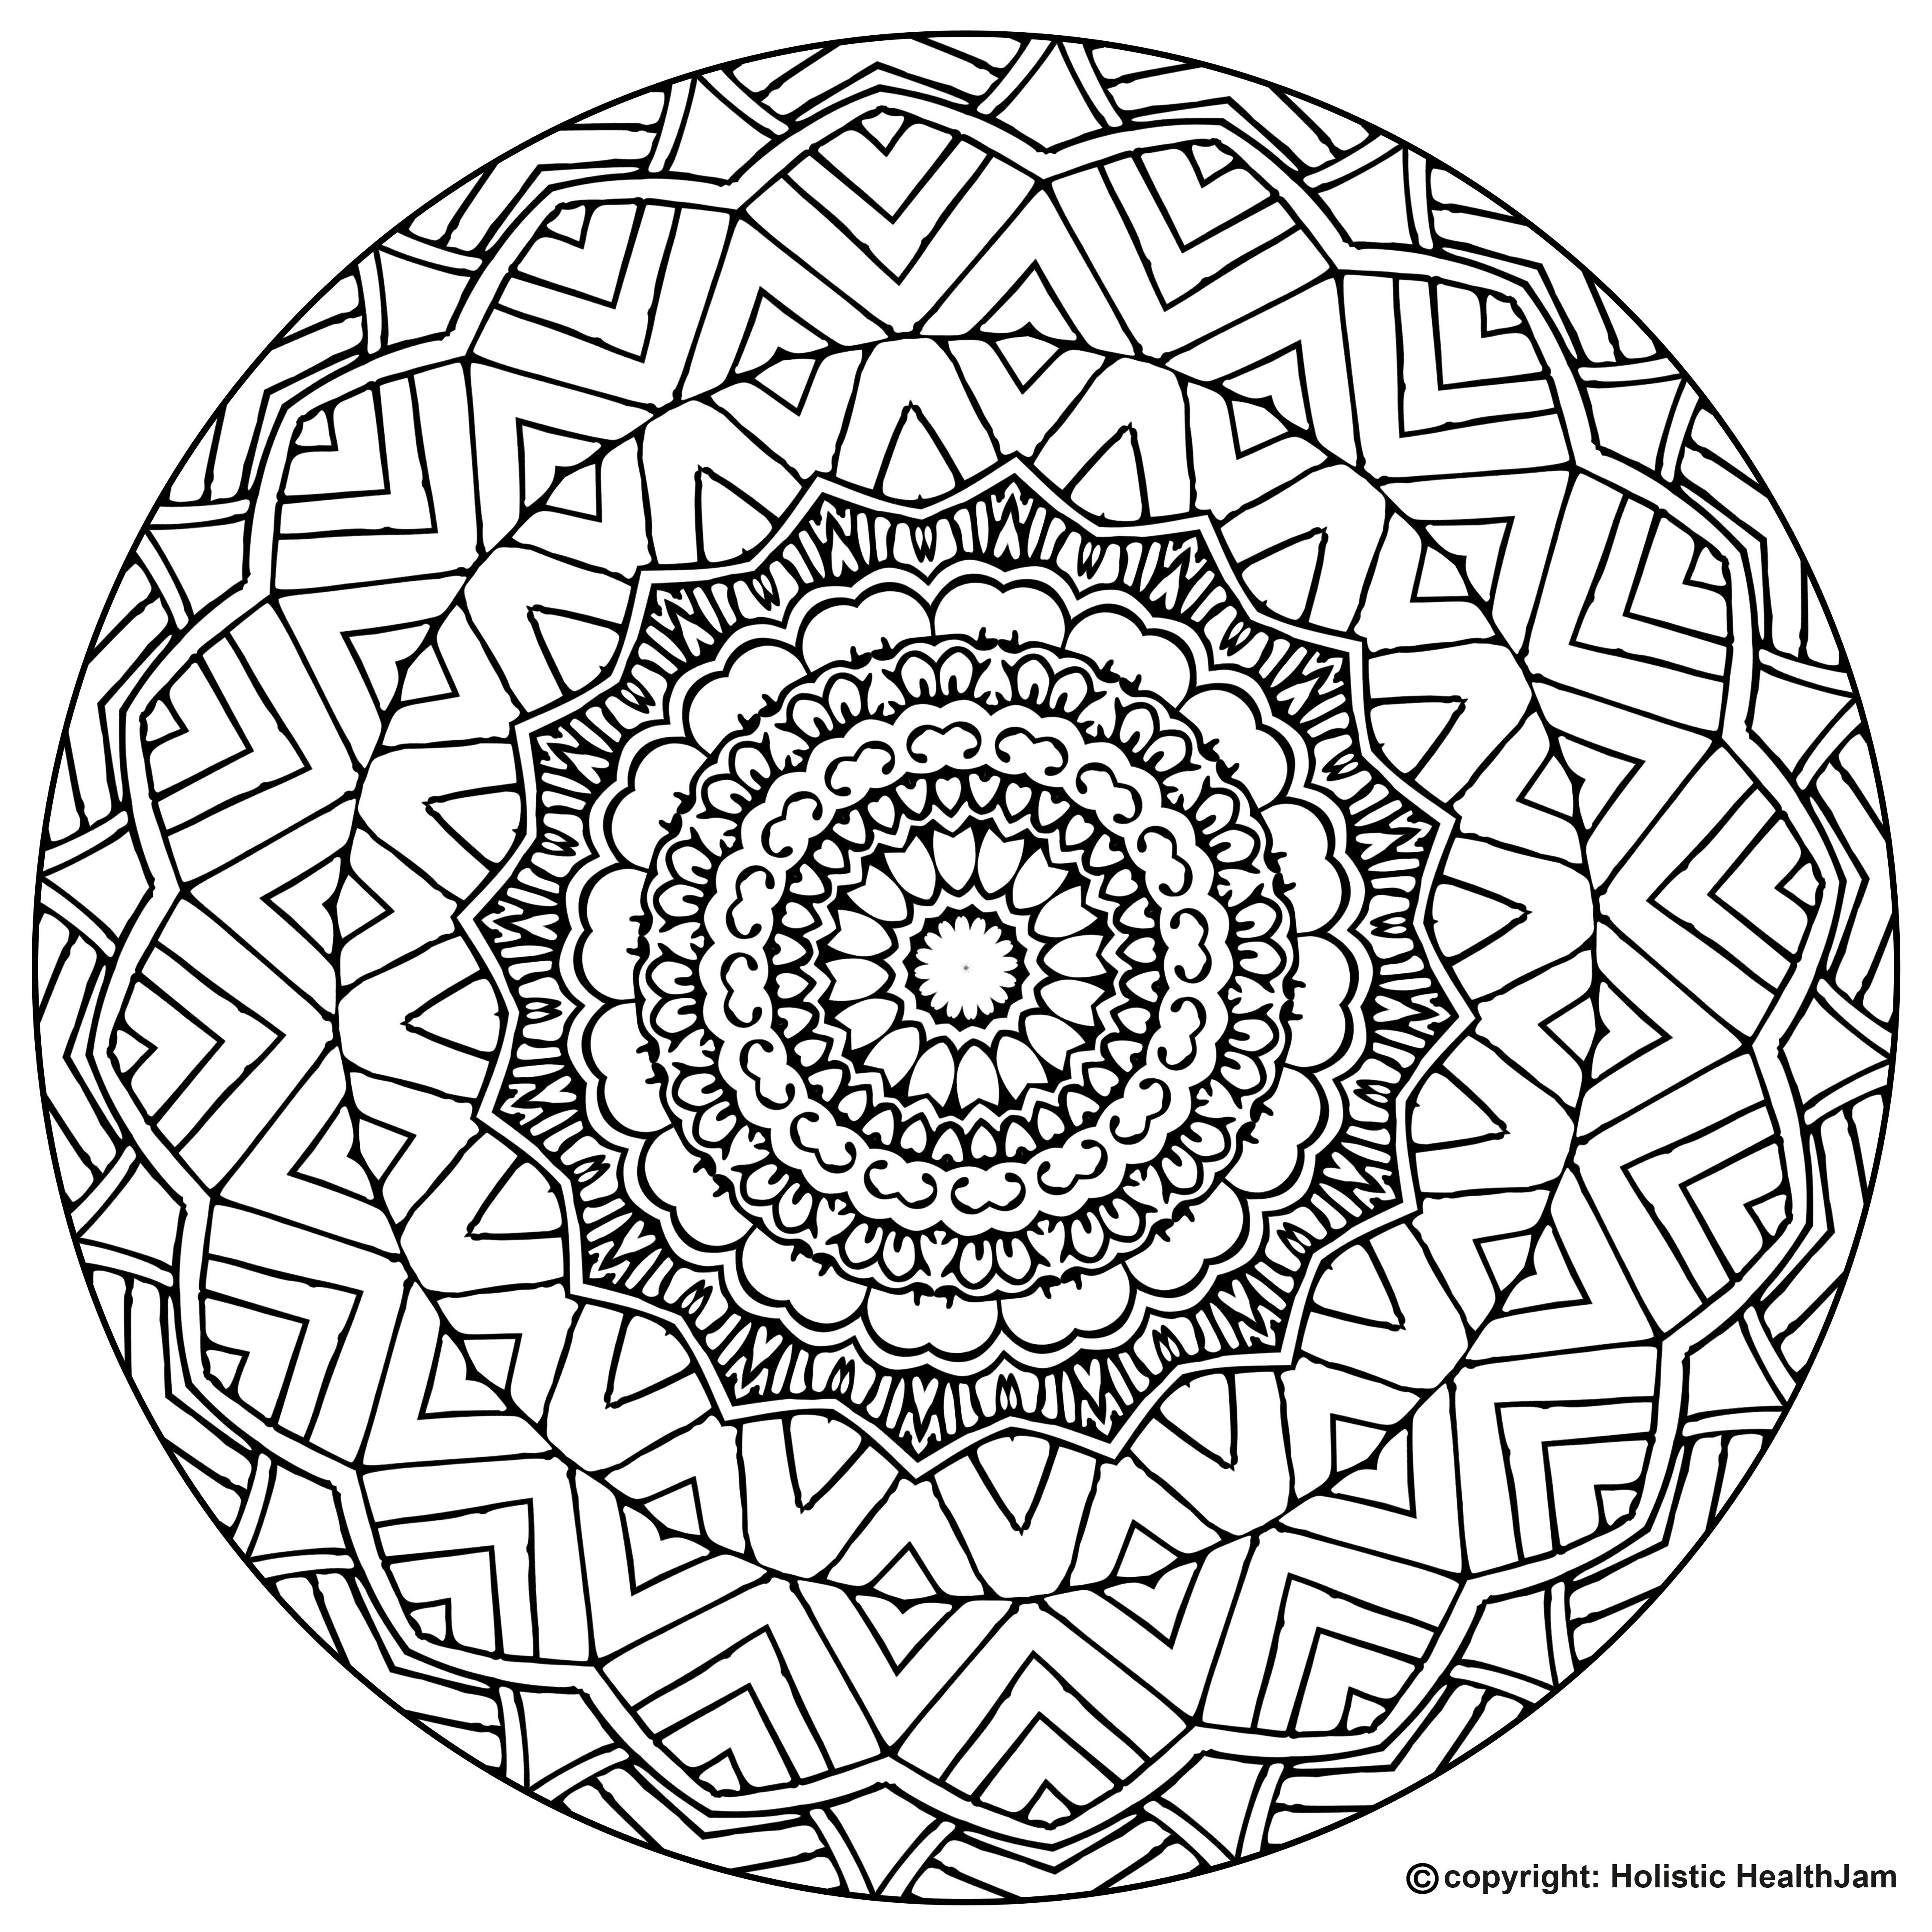 free printable mandalas to color for adults mandala from free coloring books for adults 14 mandalas to printable for free color mandalas adults